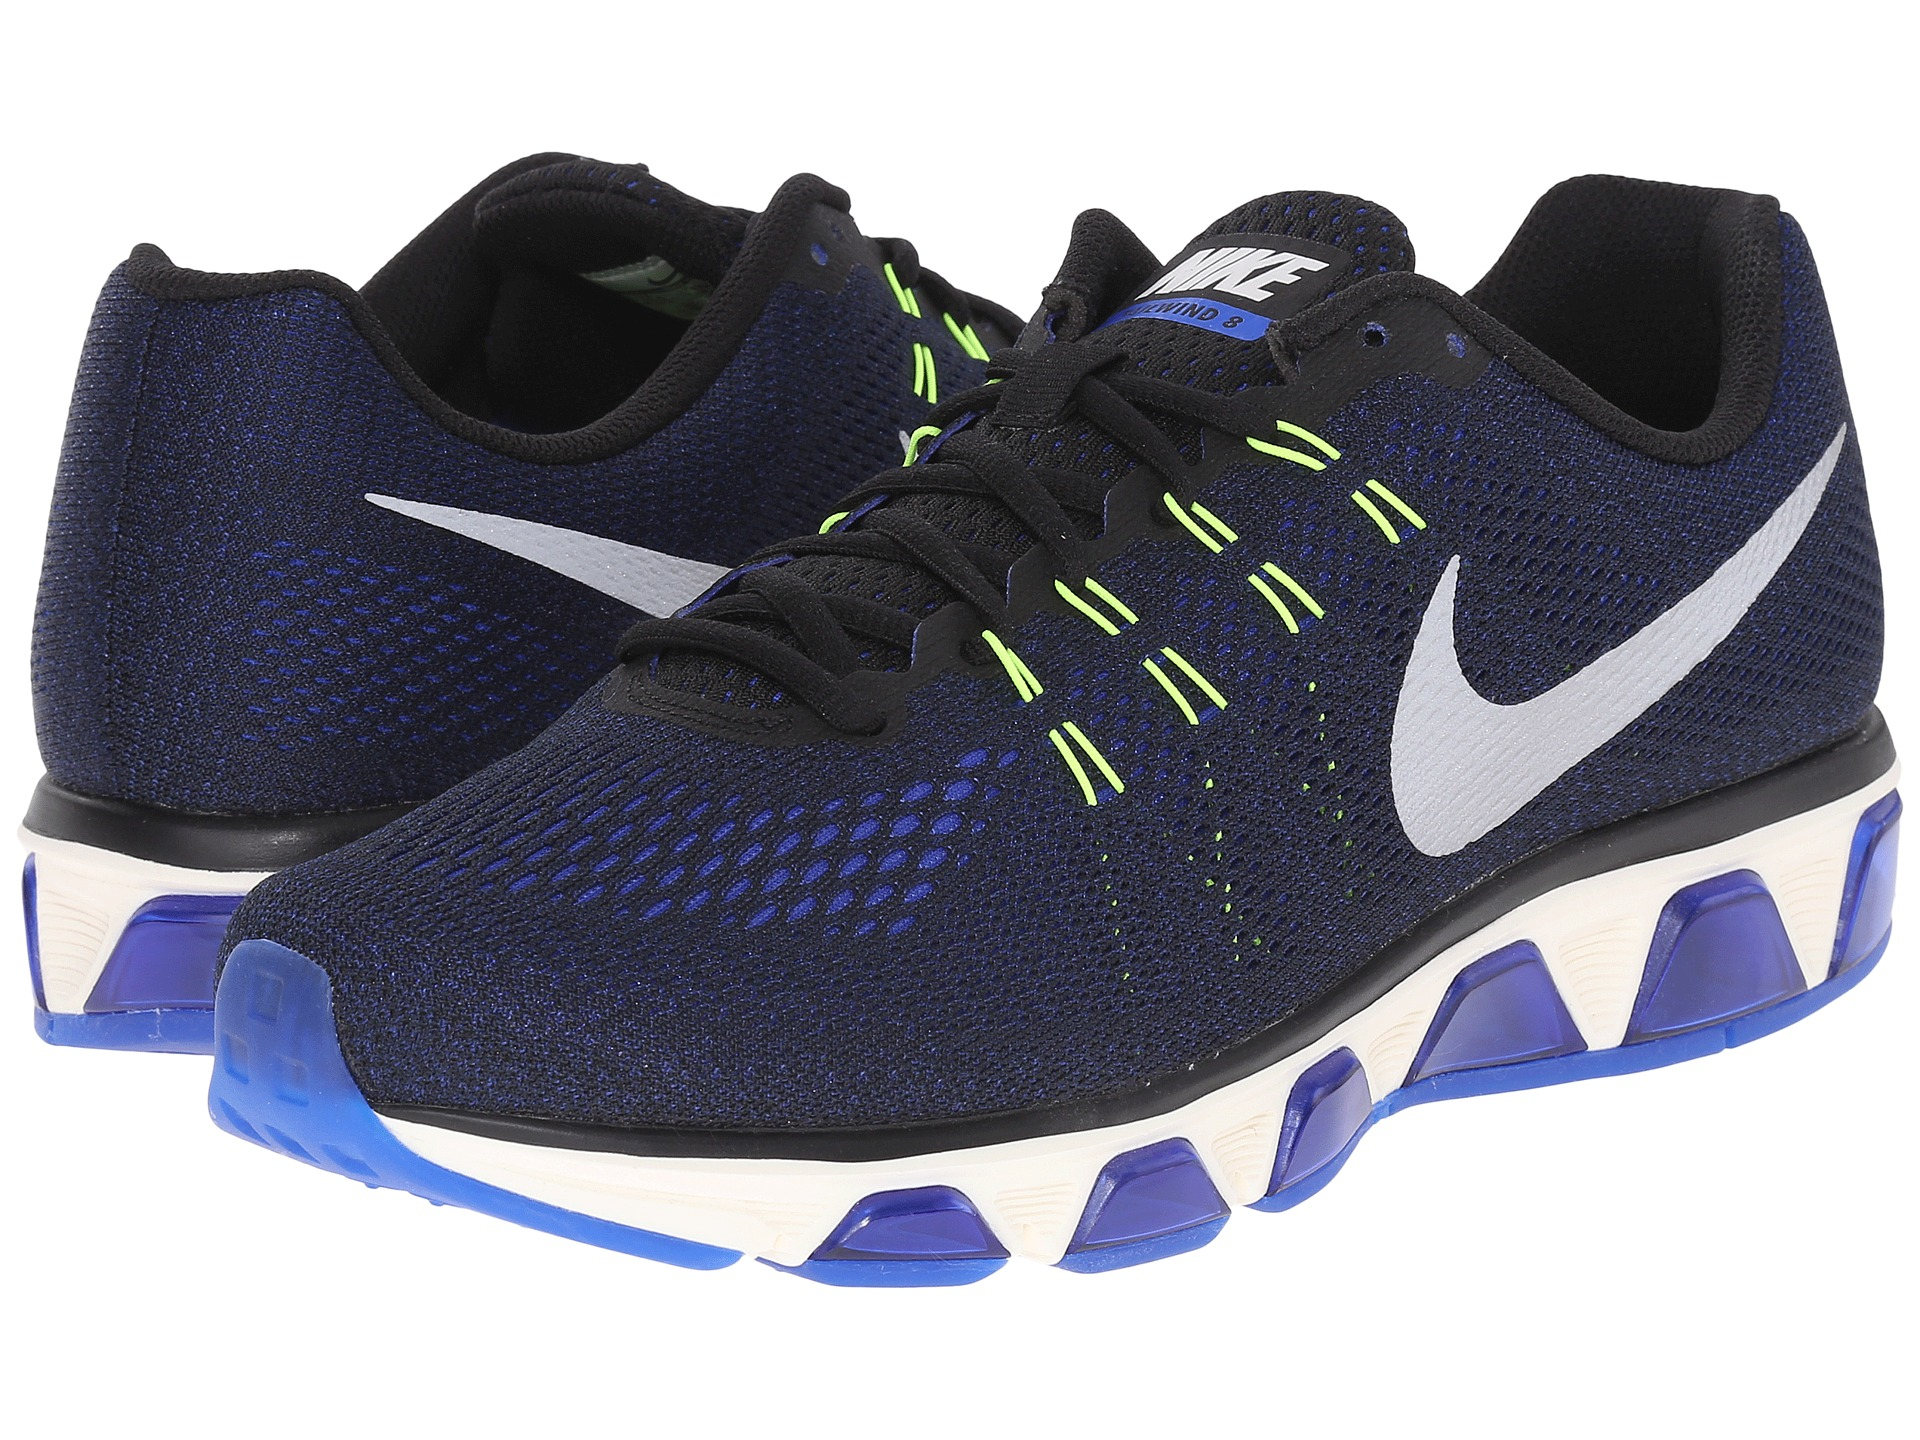 ... switzerland lyst nike air max tailwind 8 in blue for men 0f231 ac8a2 3e69daeaa